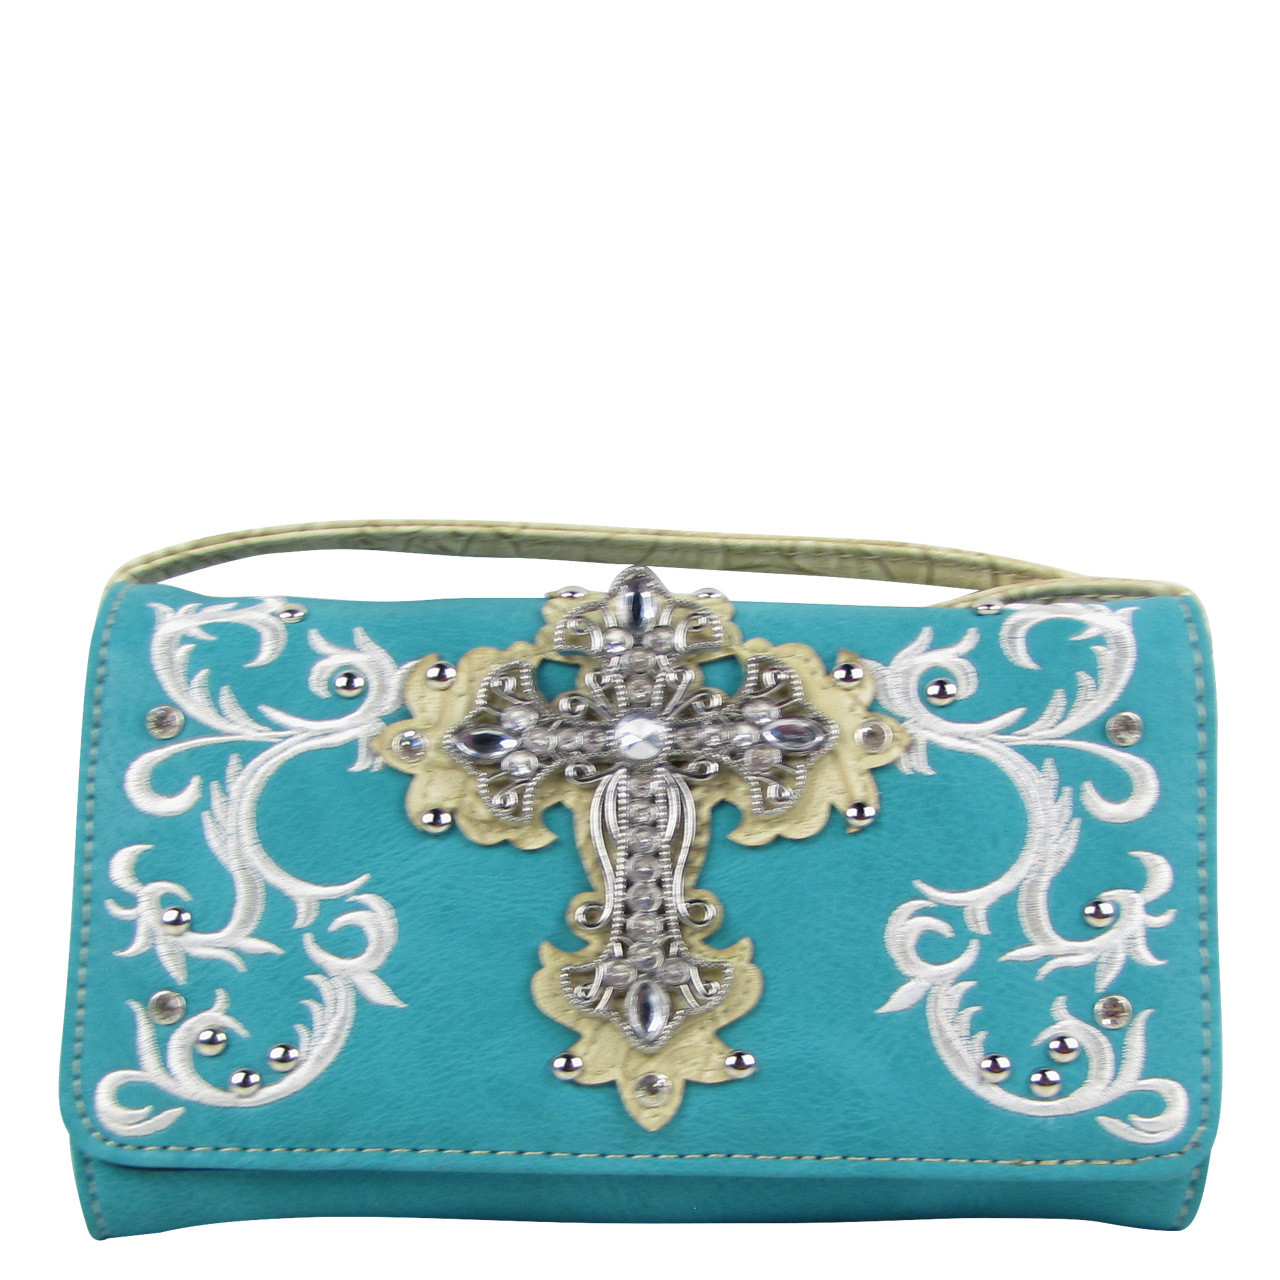 TURQUOISE RHINESTONE CROSS LOOK CLUTCH TRIFOLD WALLET CW1-0472TRQ